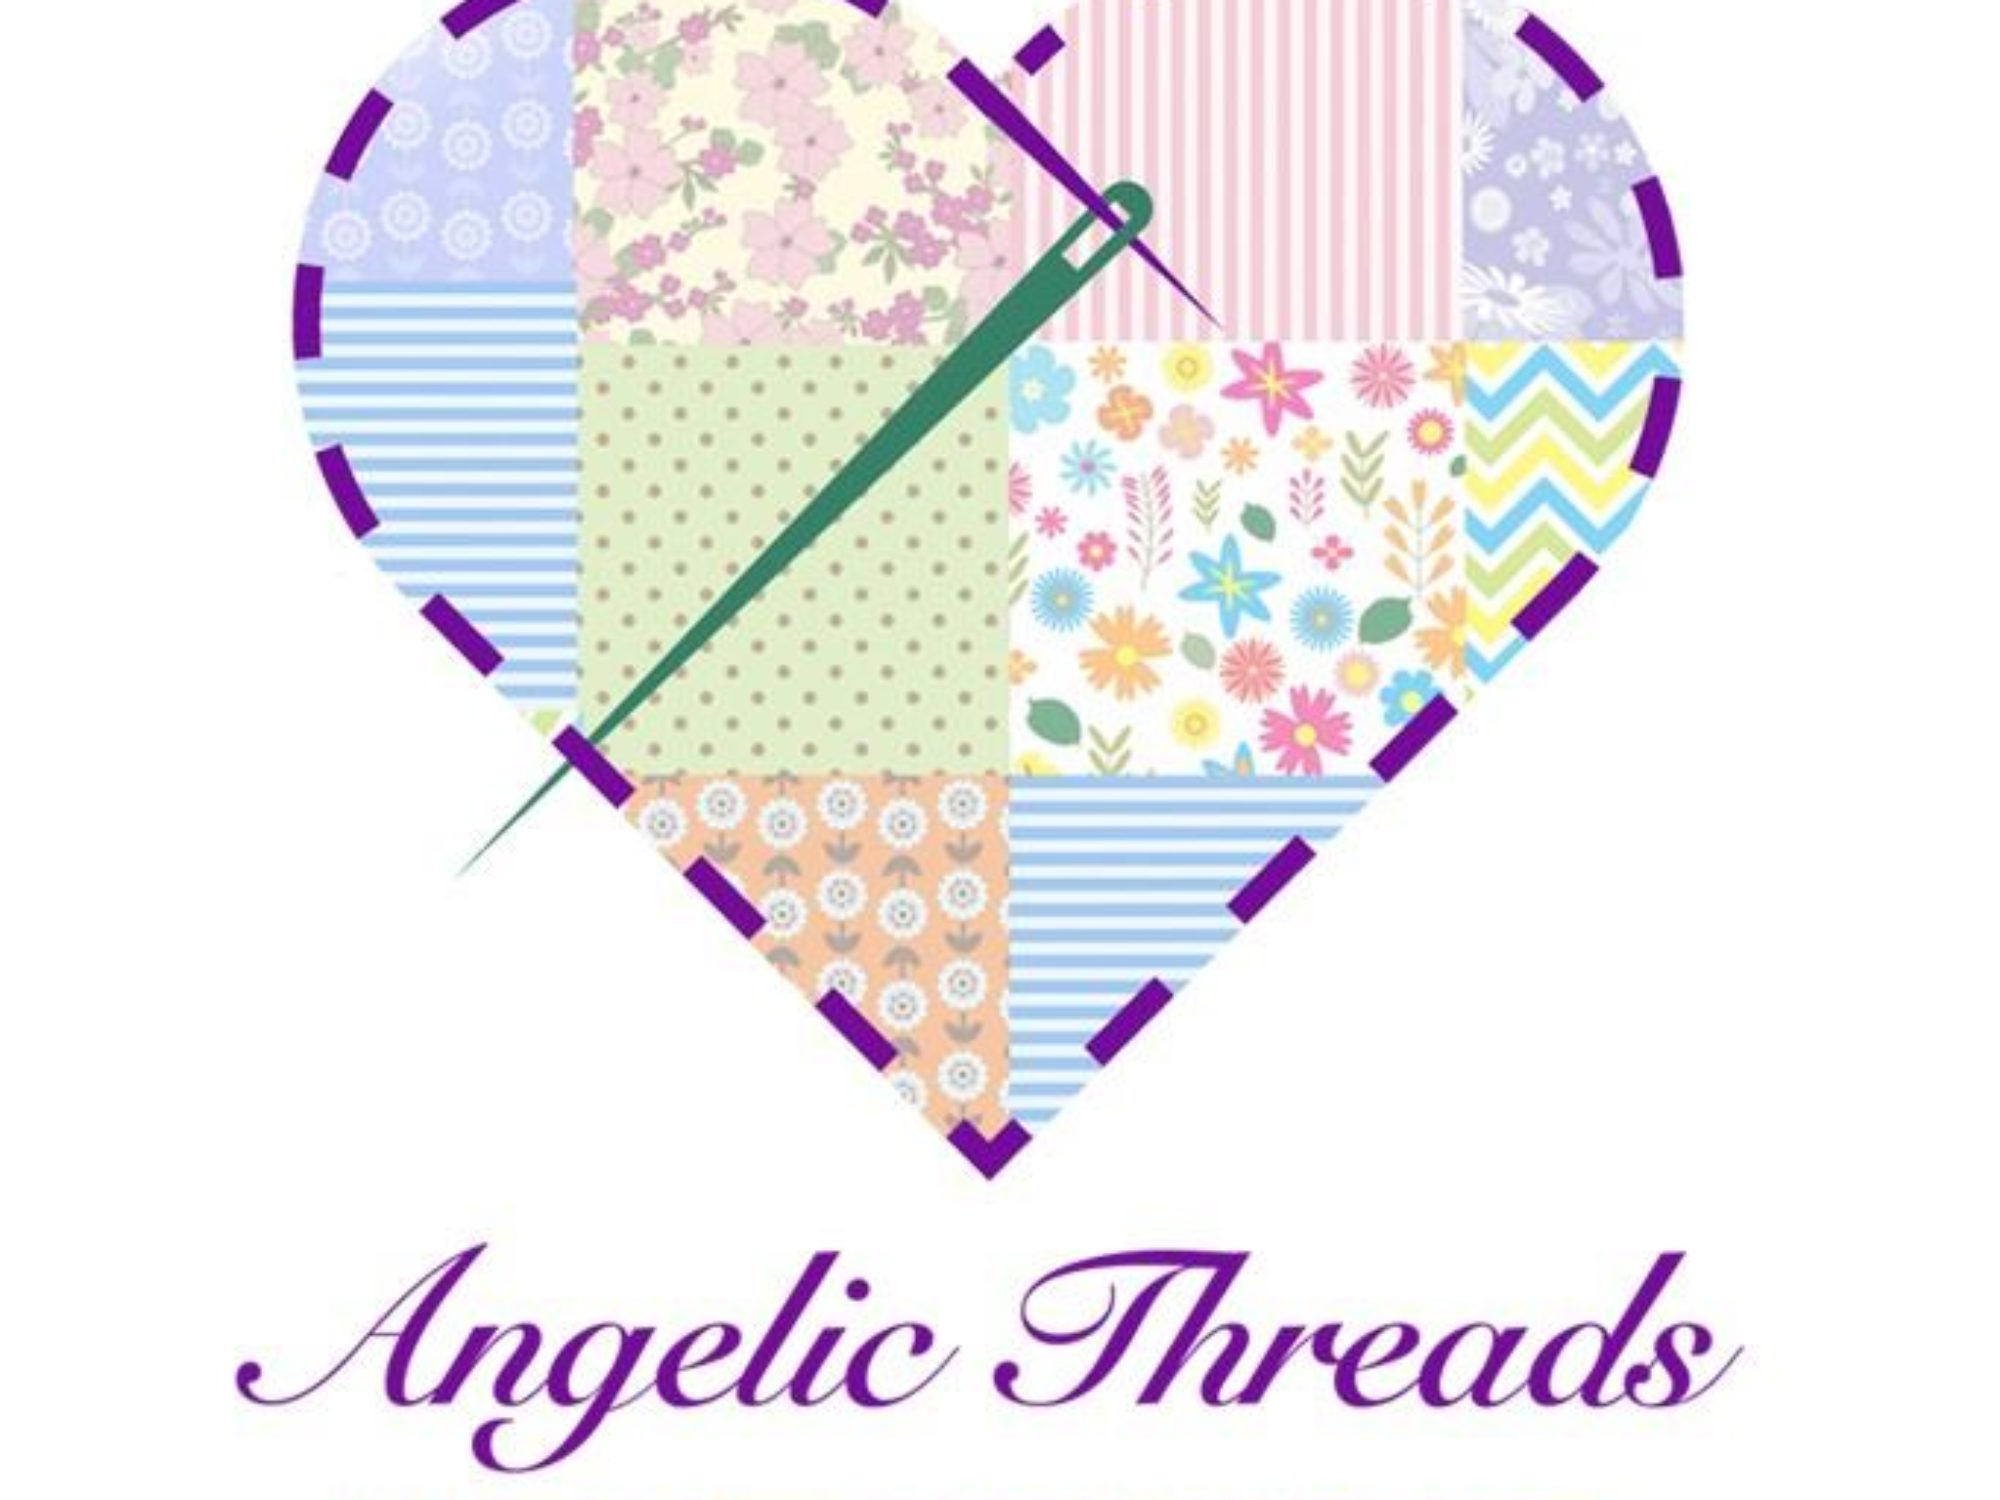 Angelic Threads